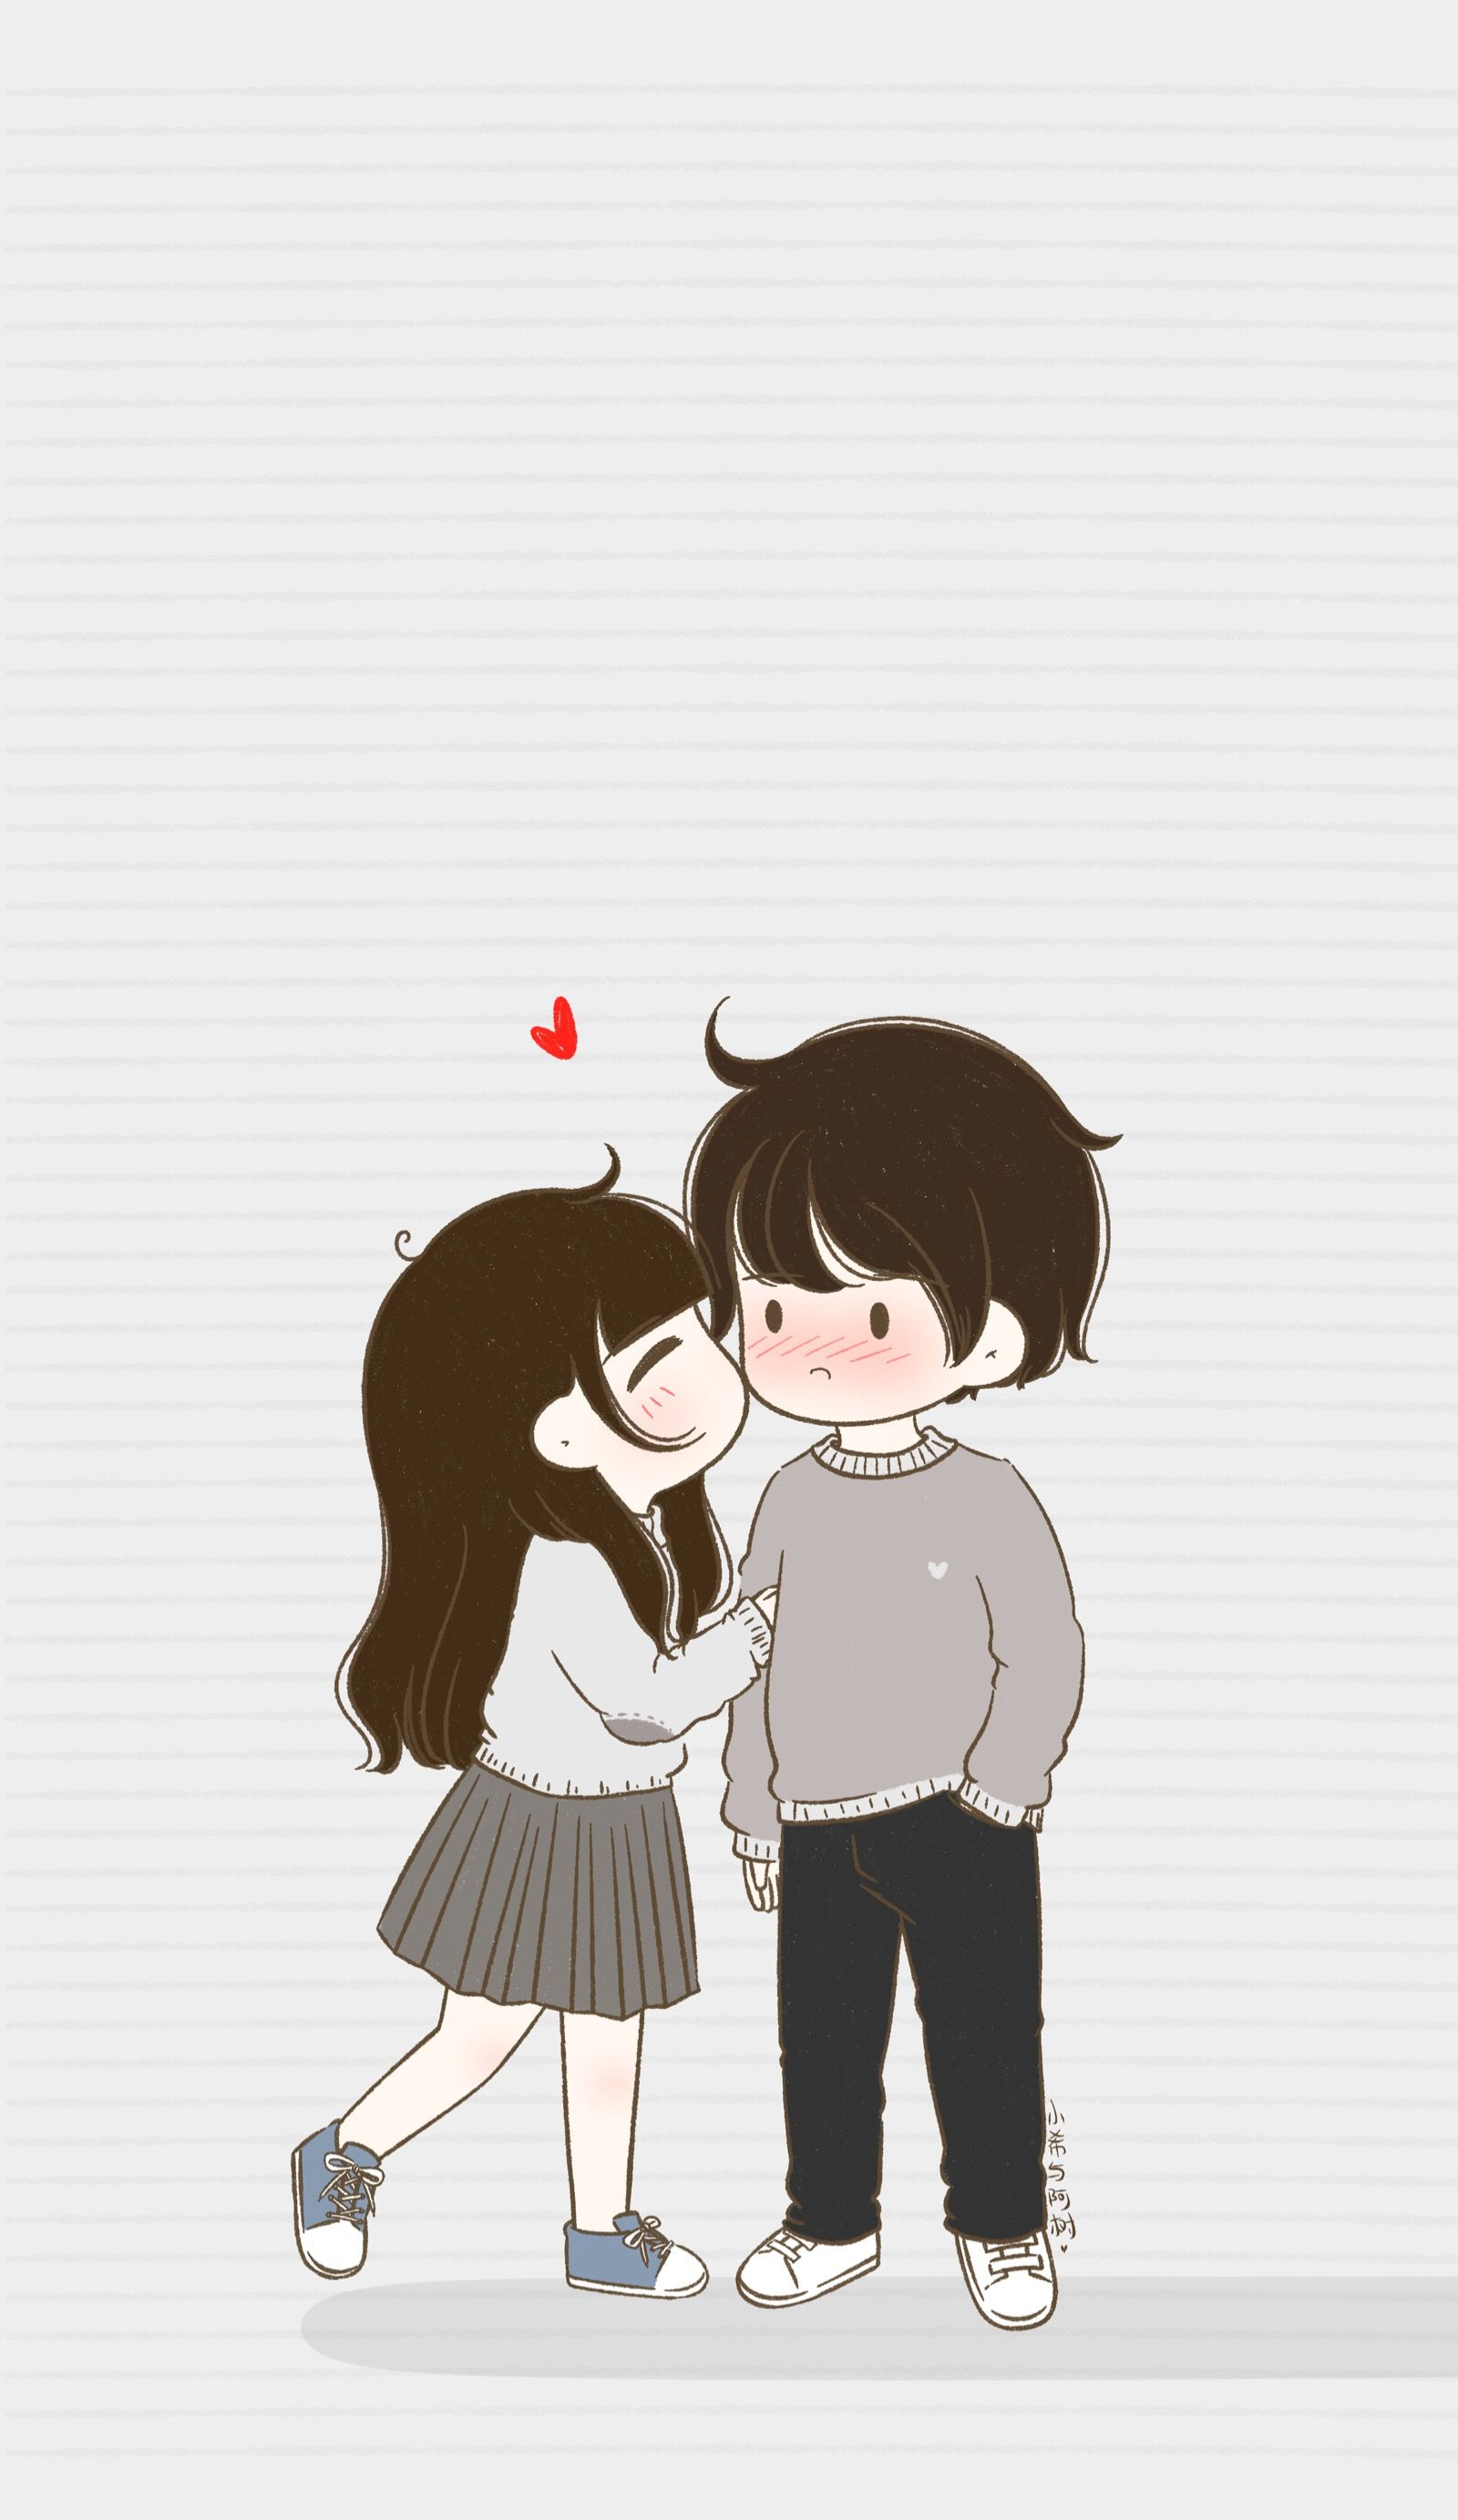 I Love You L O V M S Cute Love Cartoons Cartoons Love Cute Couple Drawings